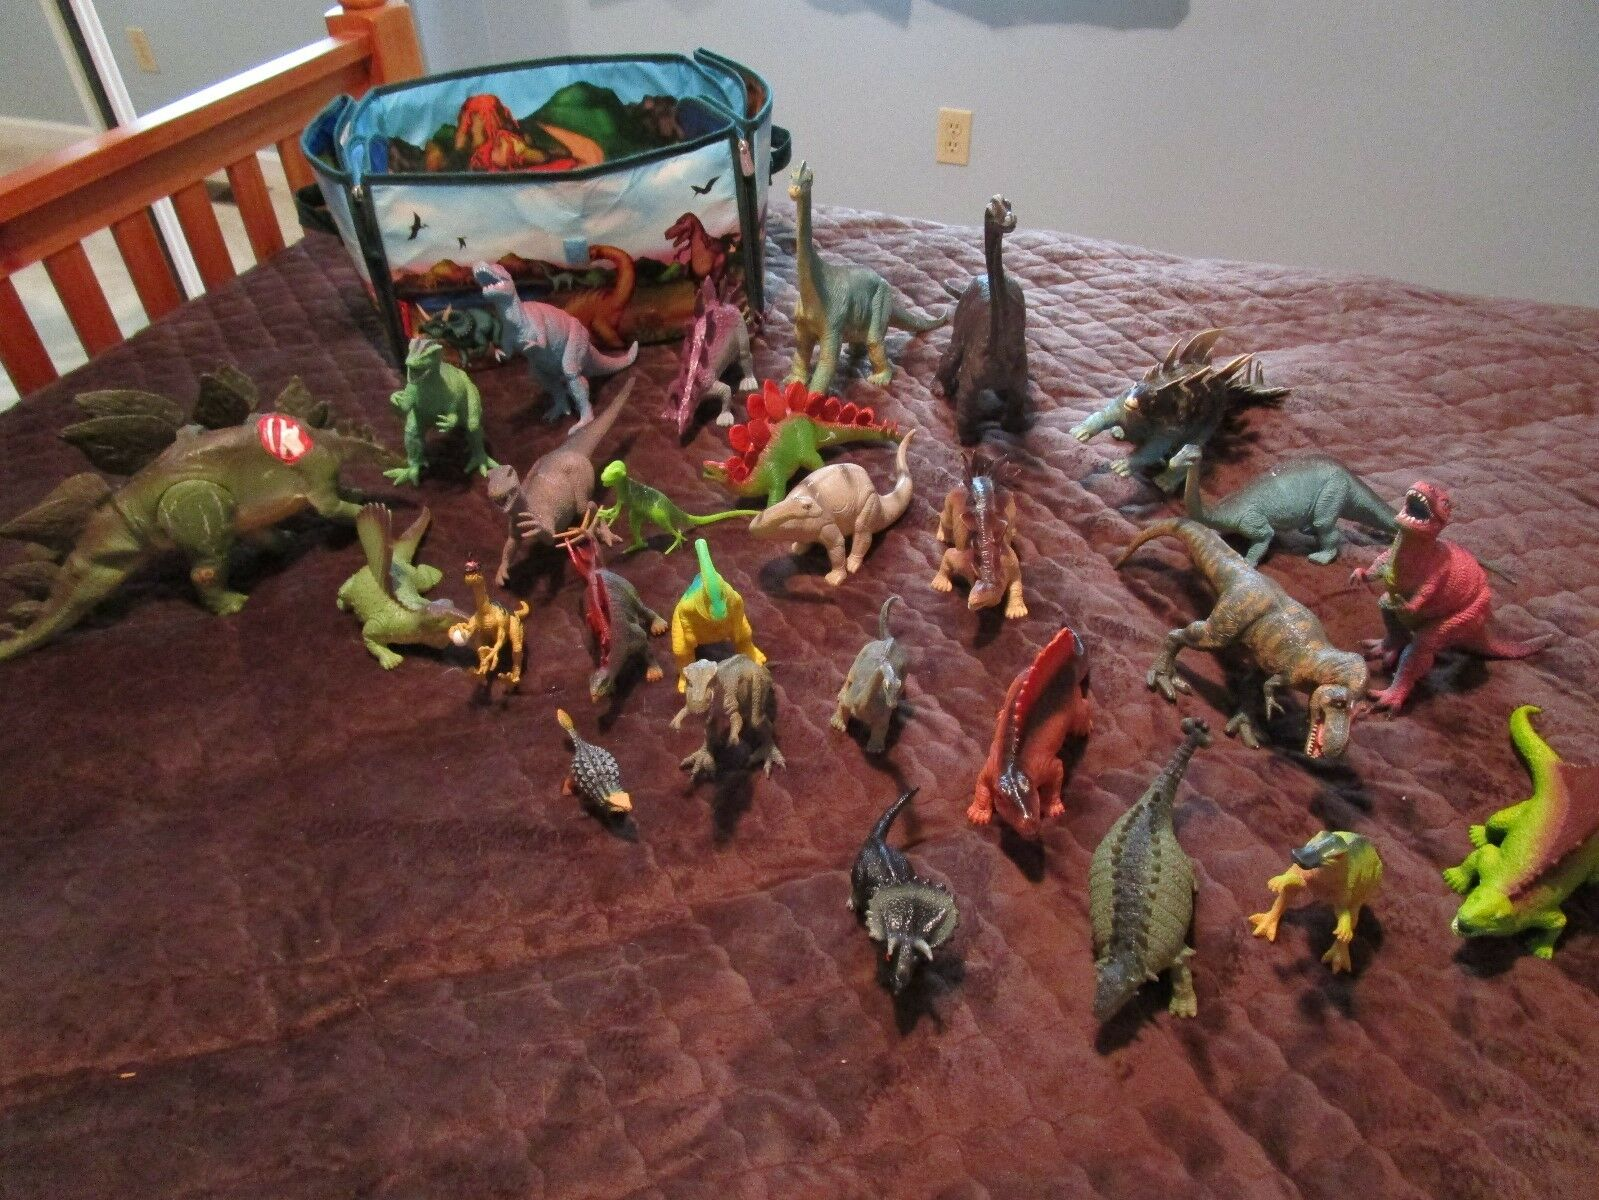 Lot of 29 DINOSAURS Assortment Figures with Storage Tote Transforms to Playmat